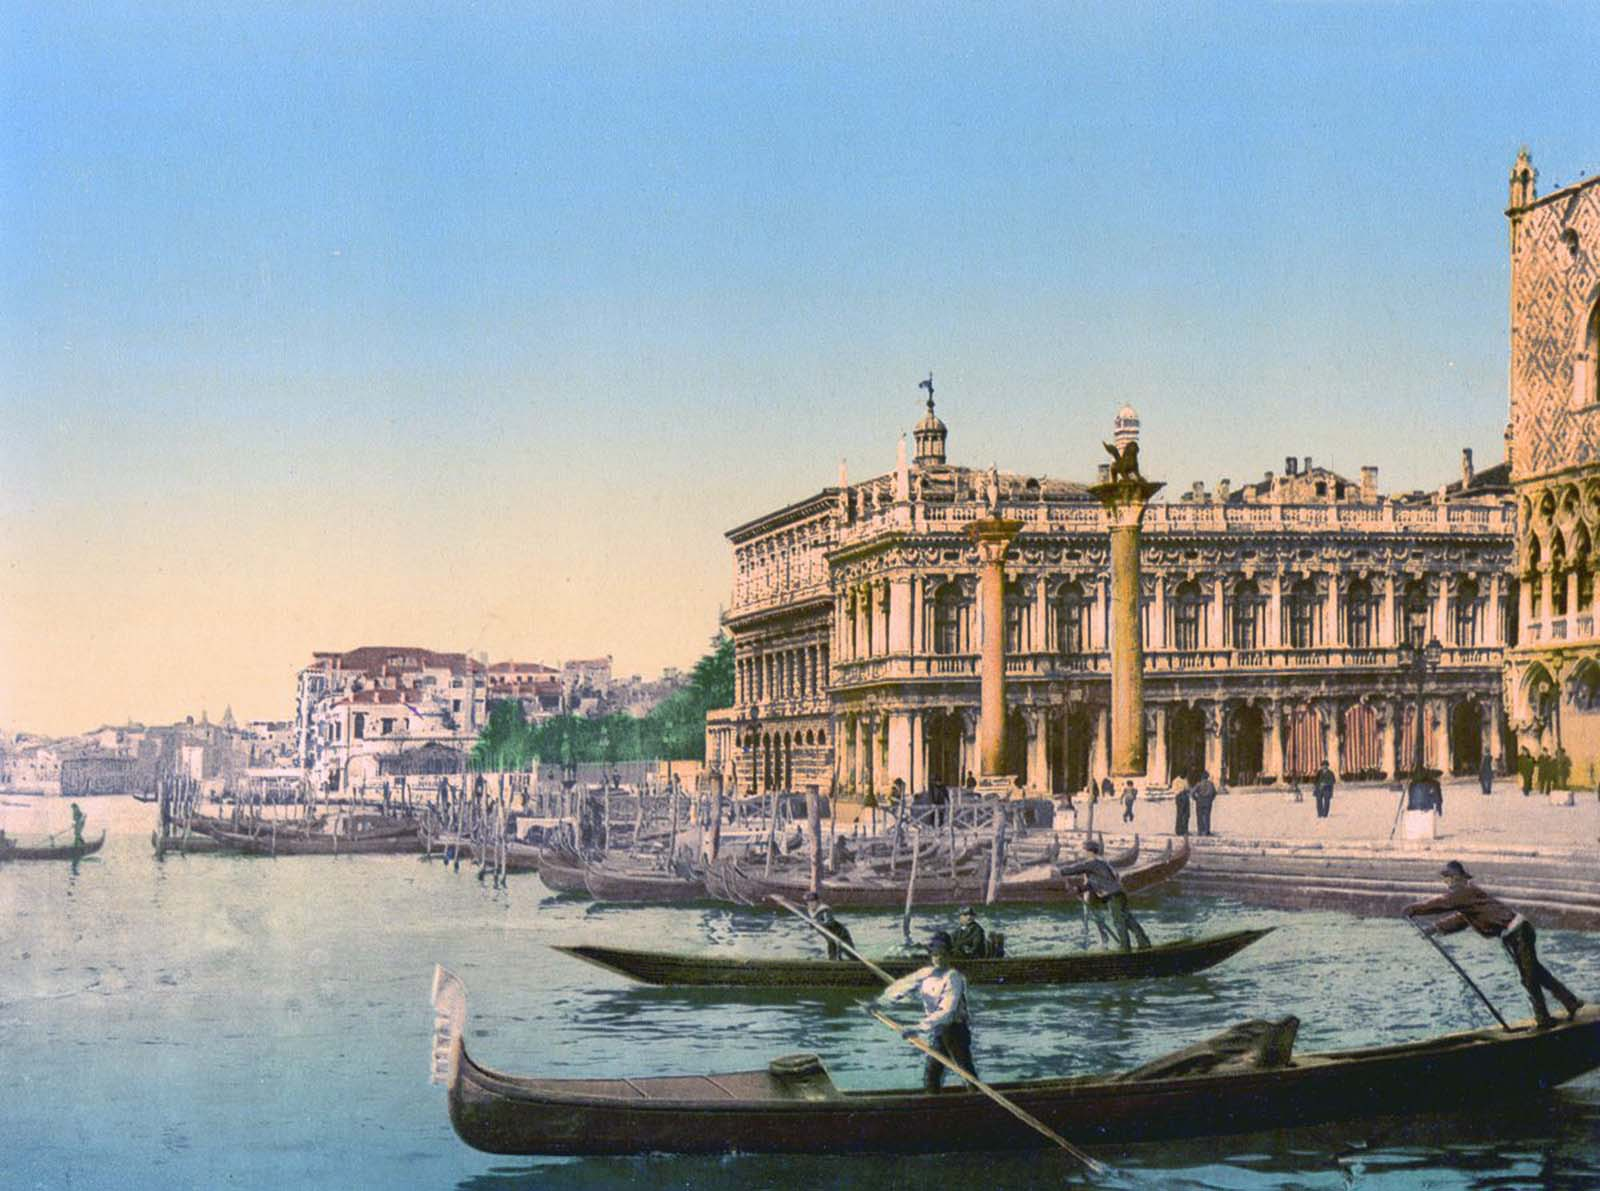 Gondolas and the Piazzetta di San Marco.